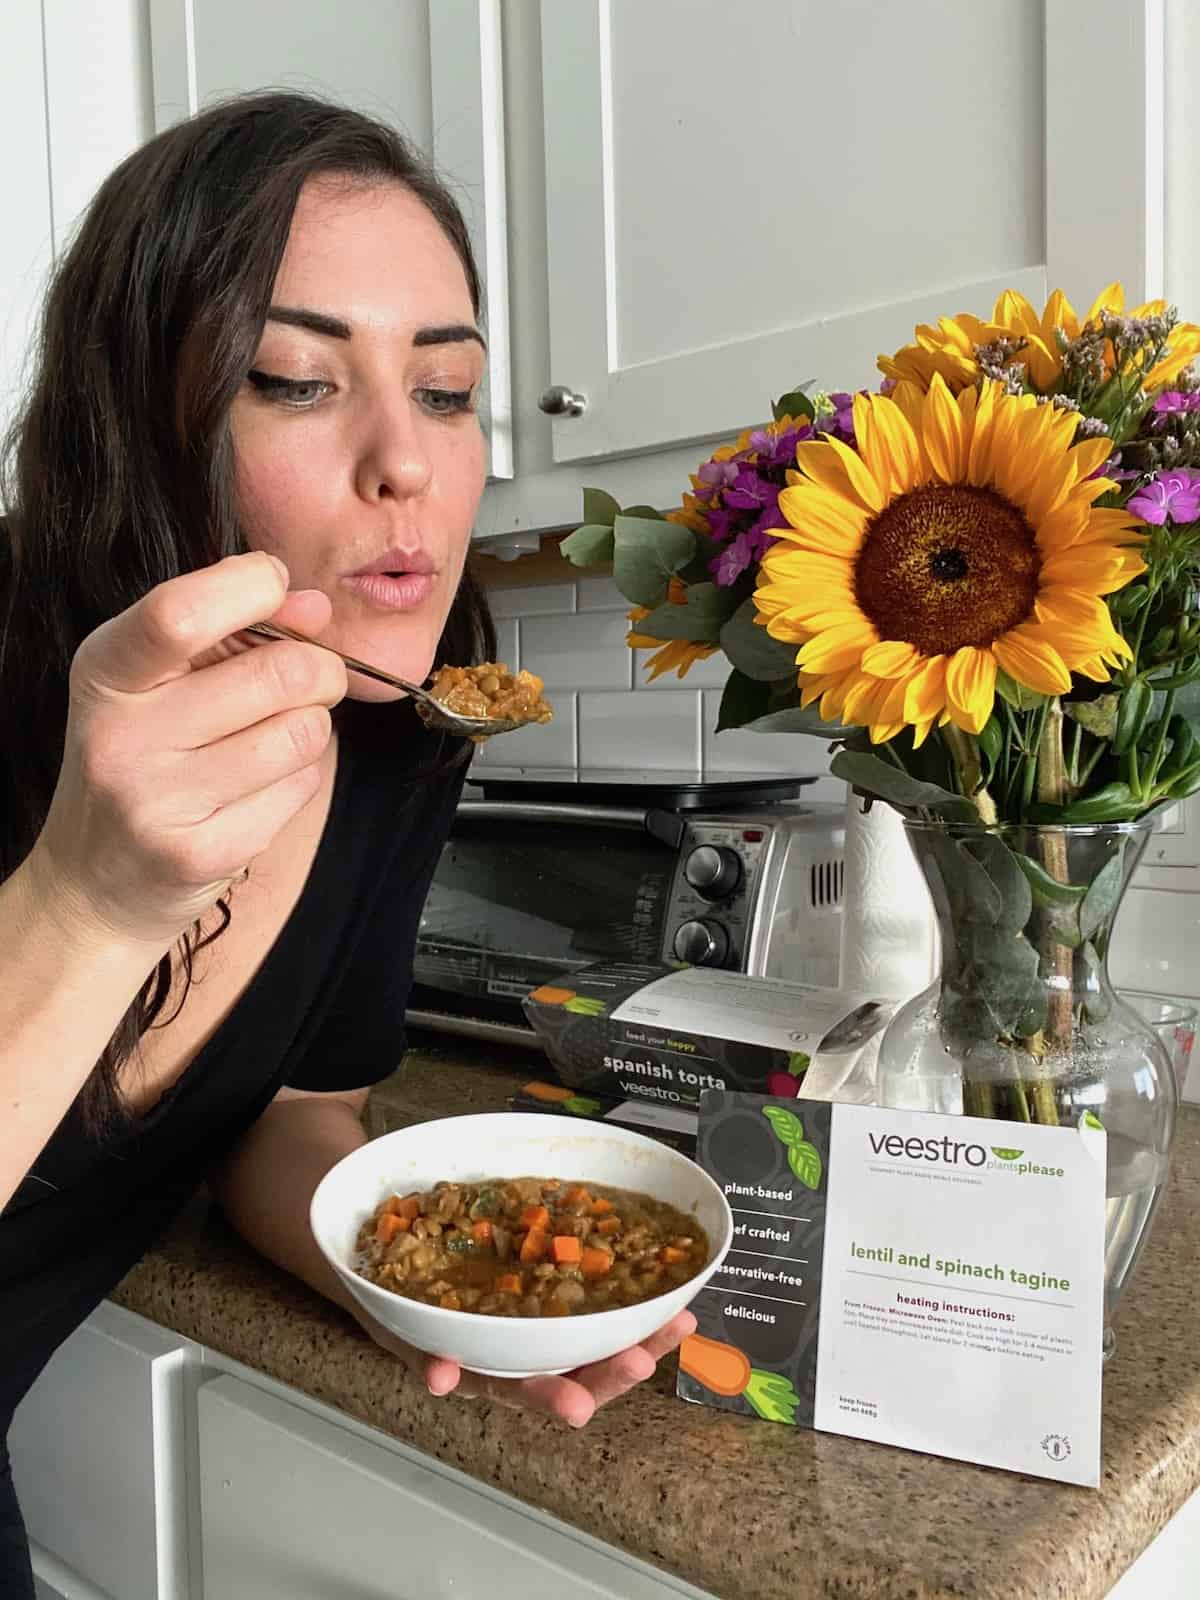 Dark haired woman holding a bowl of lentil tagine next to boxes of veestro meals holding a spoonful of lentils up and blowing on it